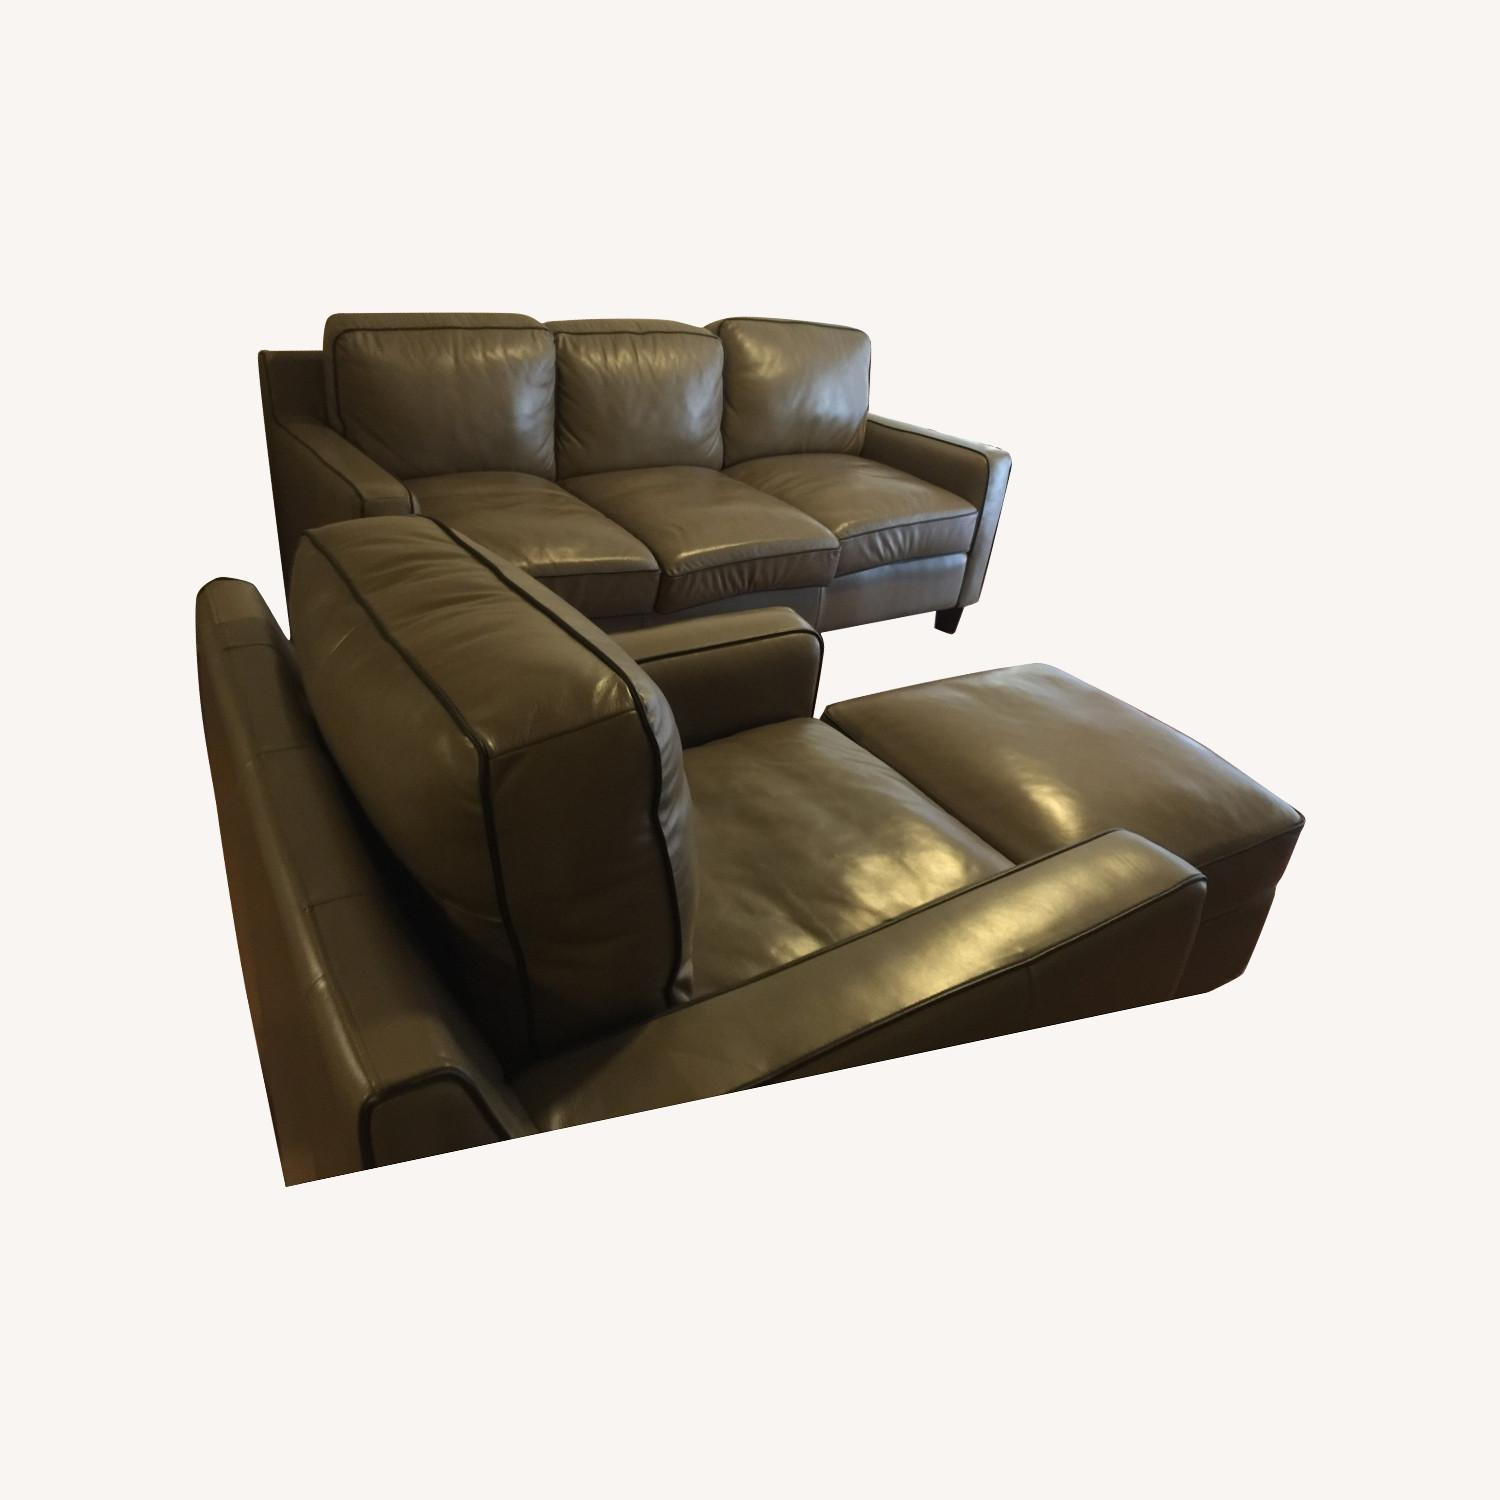 Sofa in Leather 3 Pieces Total - image-0